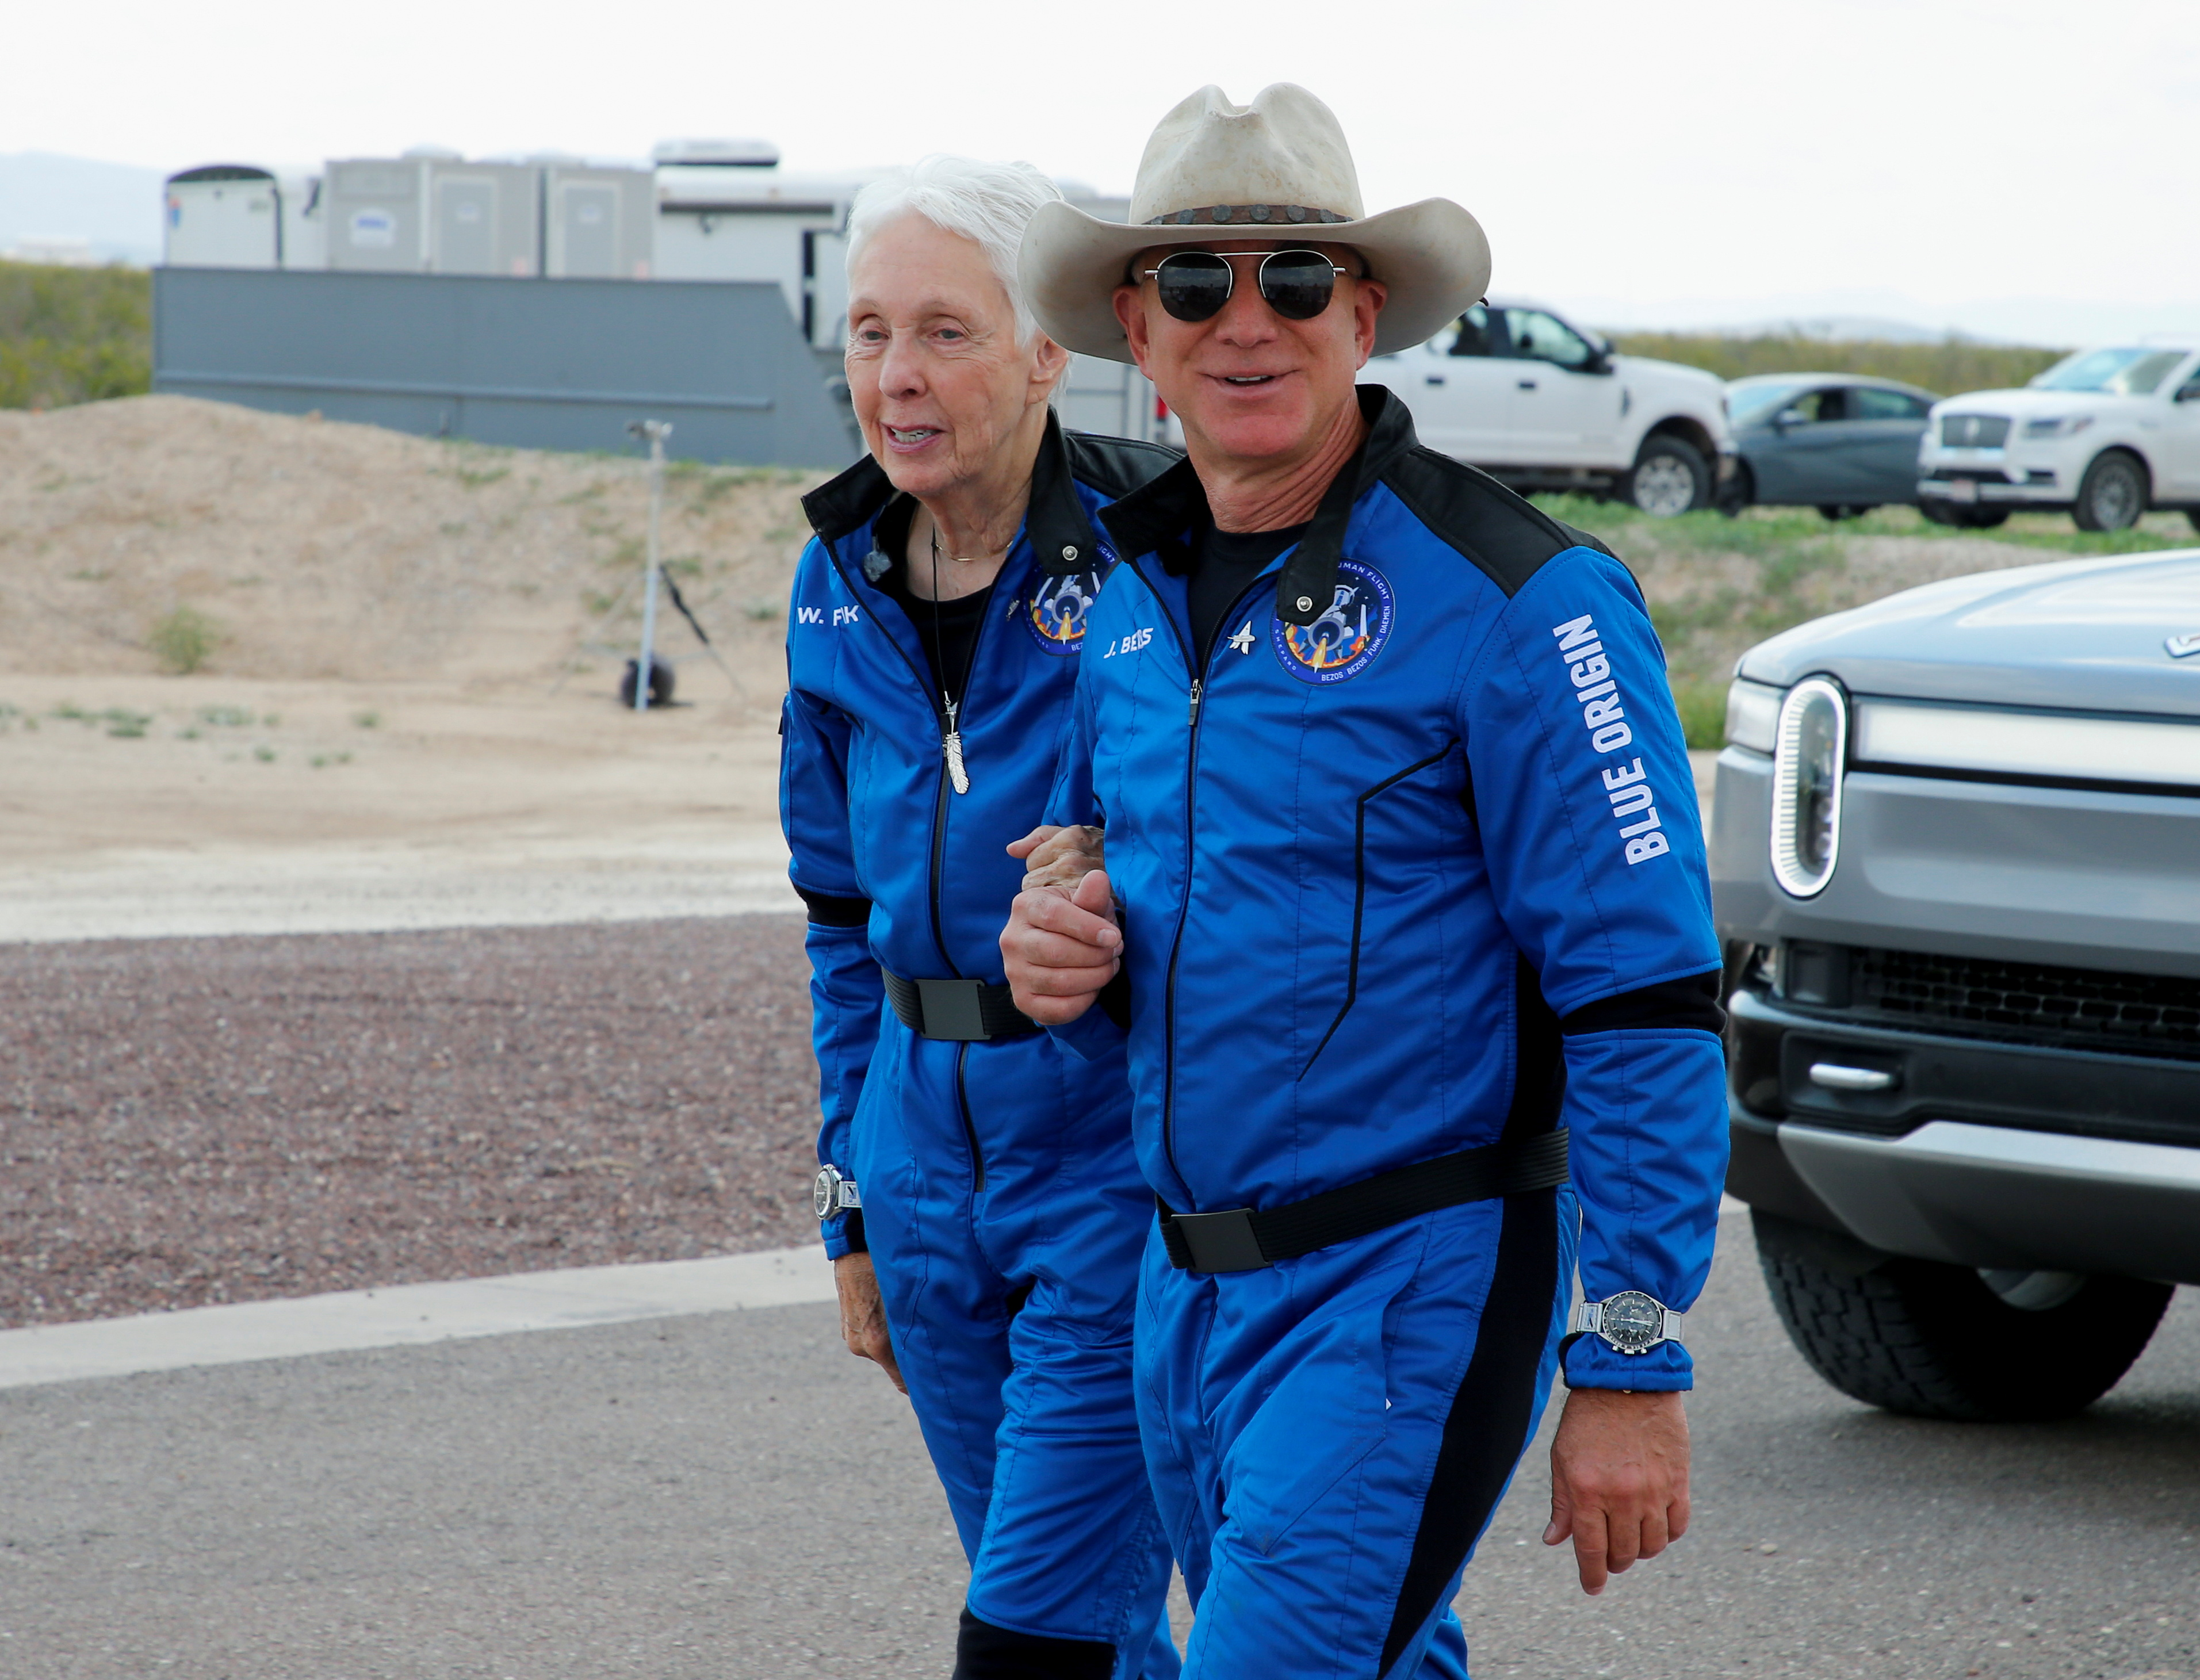 Billionaire American businessman Jeff Bezos walks with crew mate Wally Funk at the landing pad after they flew on Blue Origin's inaugural flight to the edge of space, in the nearby town of Van Horn, Texas, U.S. July 20, 2021. Funk, 82, became the oldest person in space. REUTERS/Joe Skipper/File Photo